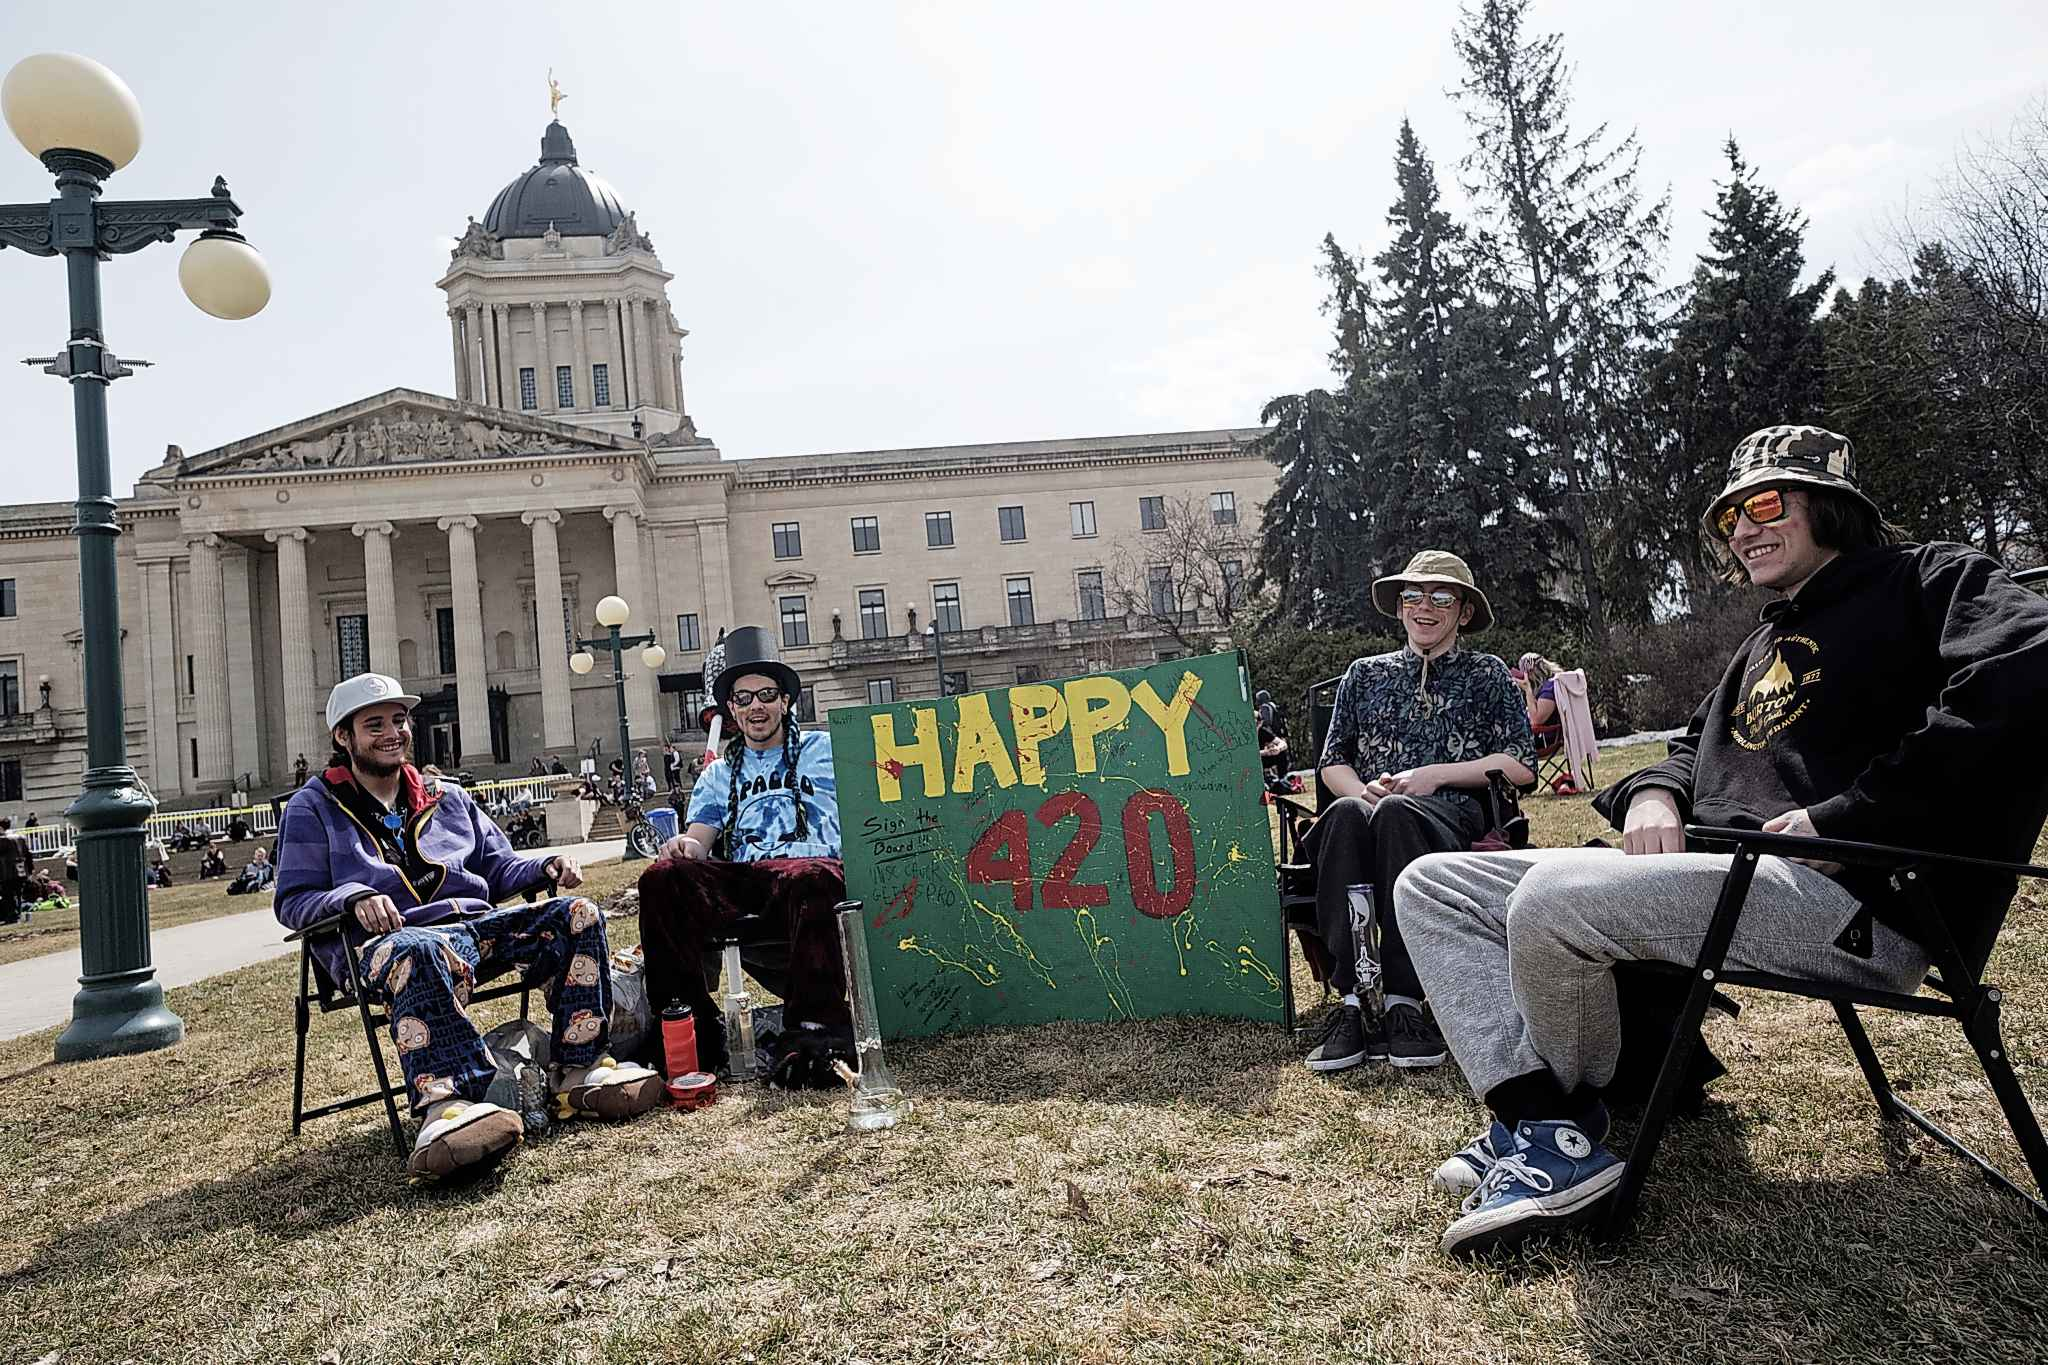 From left: Gavin Wolf, Brayden Chartrand, Dylan Johnson and Joseph Lajoie hang out during last year's 4/20 celebrations at the Manitoba Legislative Building. (Daniel Crump / Winnipeg Free Press files)